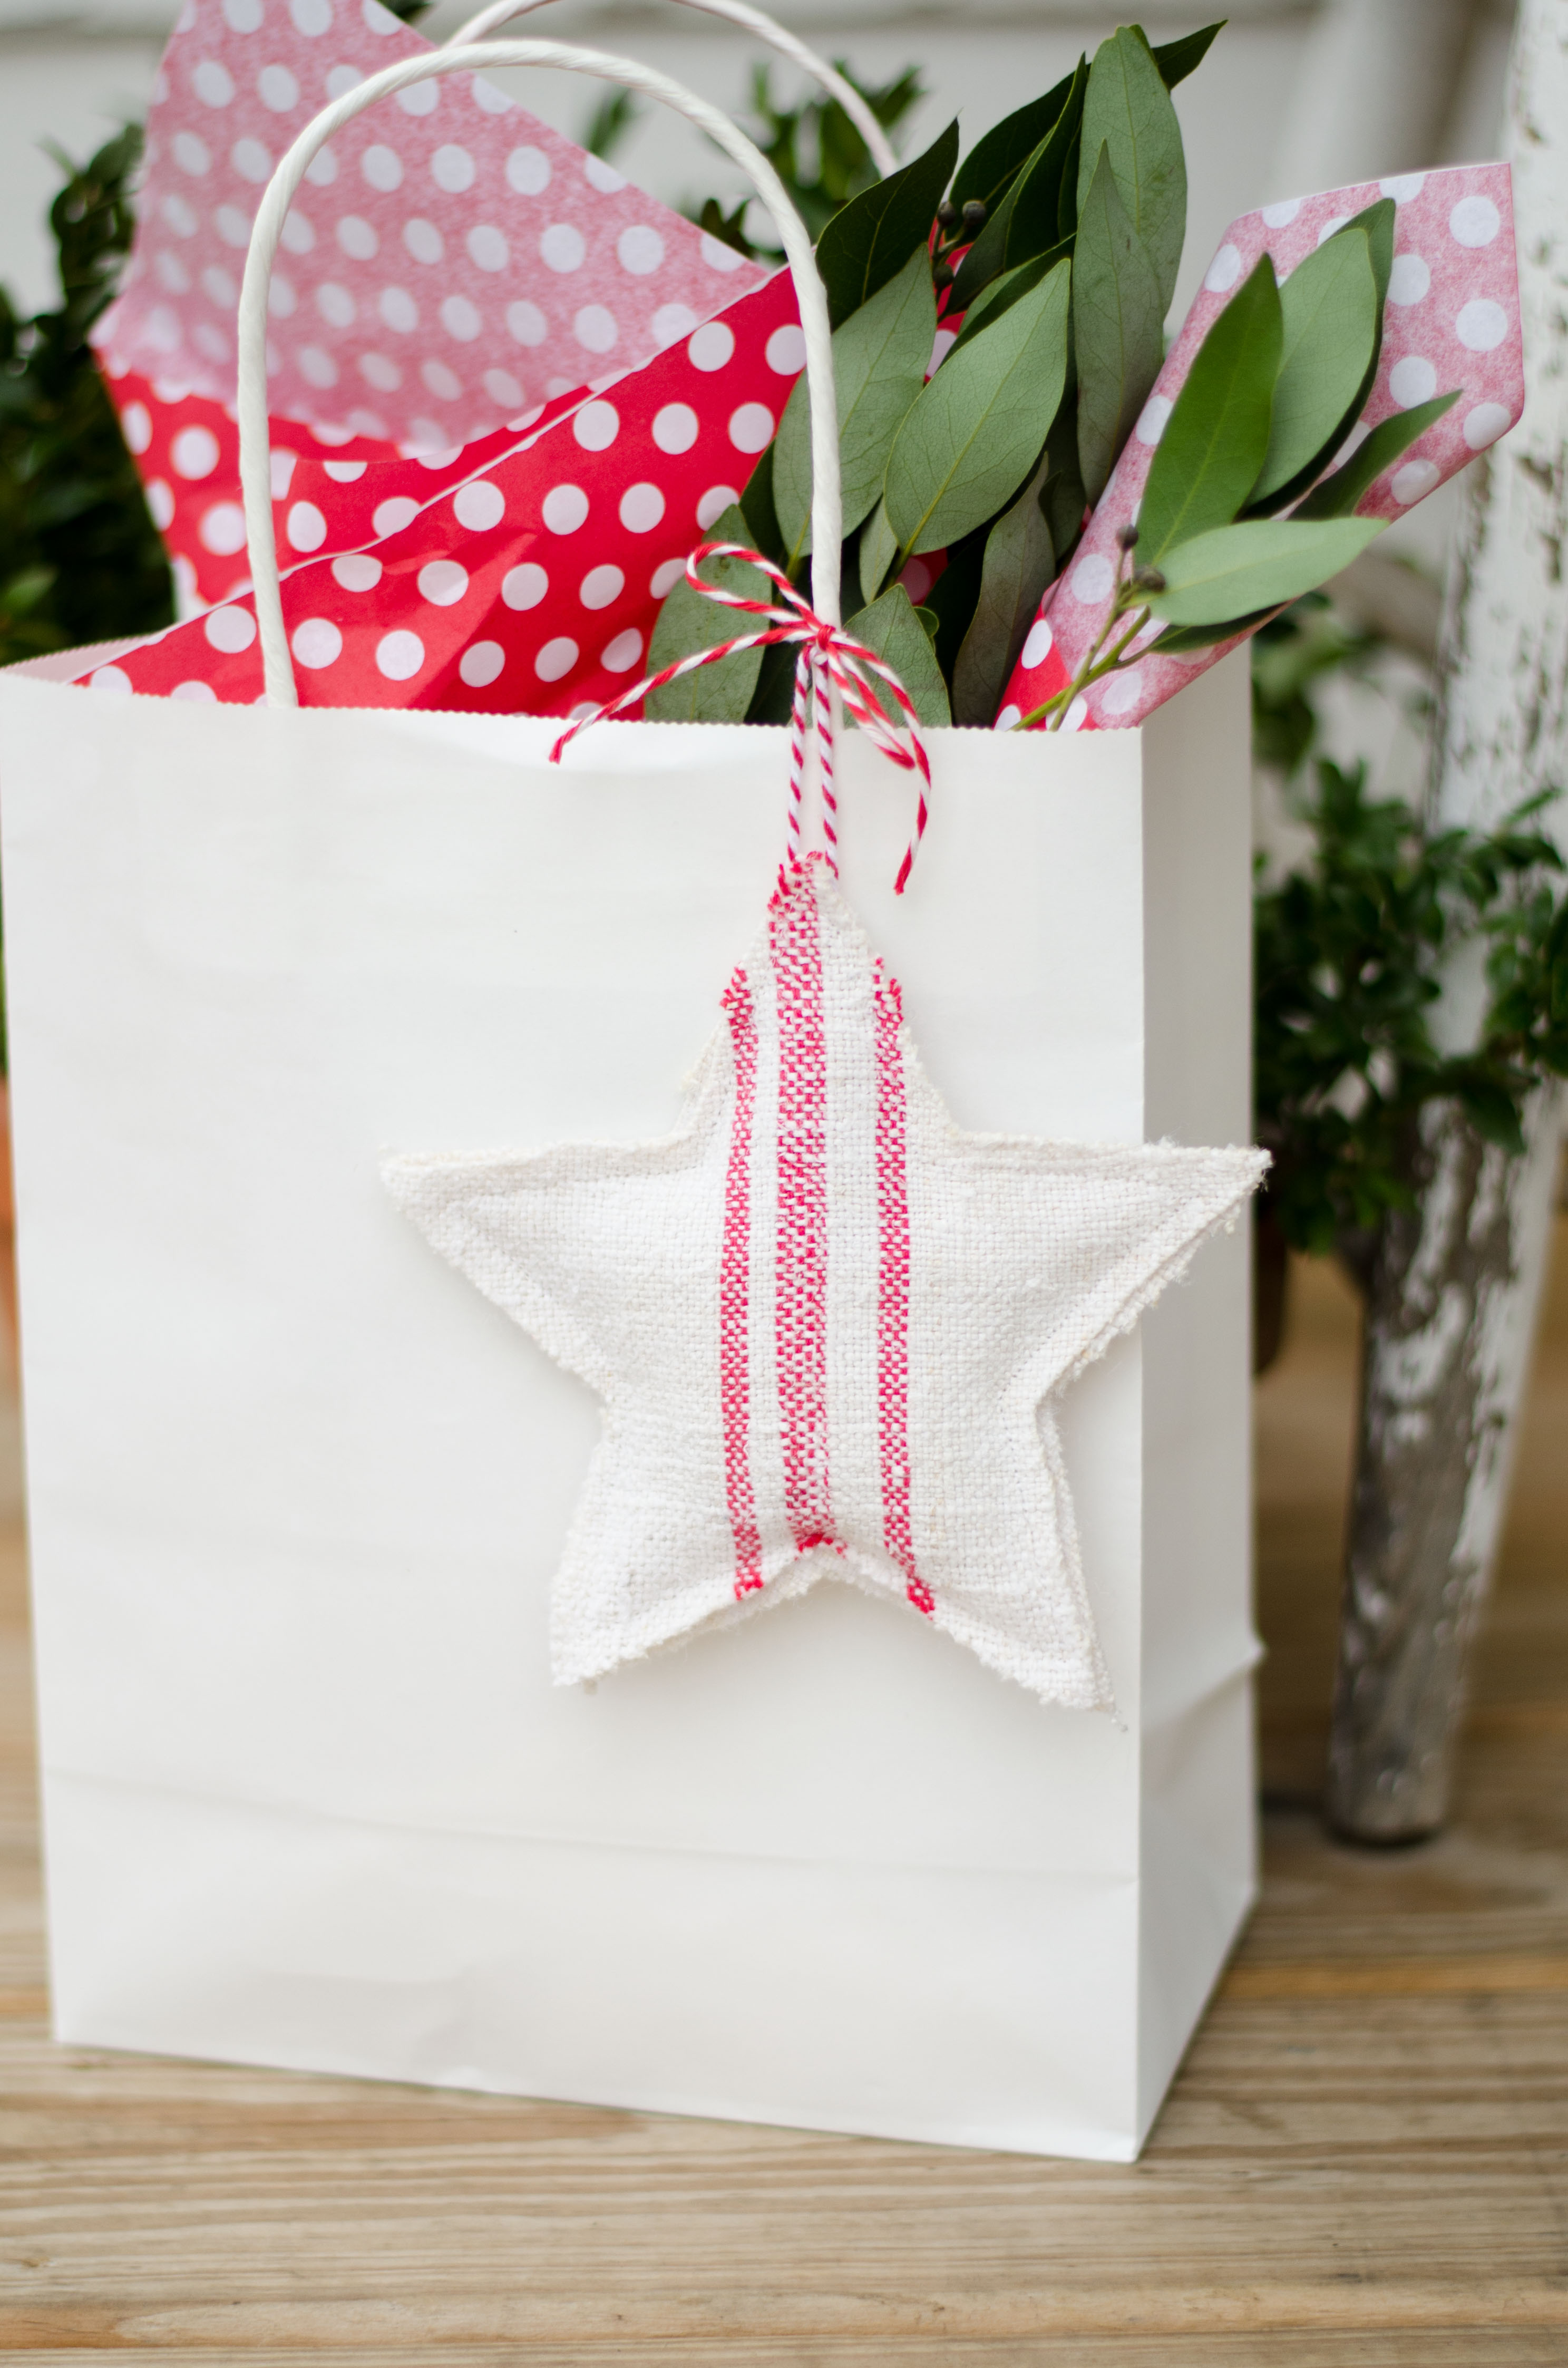 a88d1f1fc1b9 How to Wrap Gifts With Textiles - The Kim Six Fix